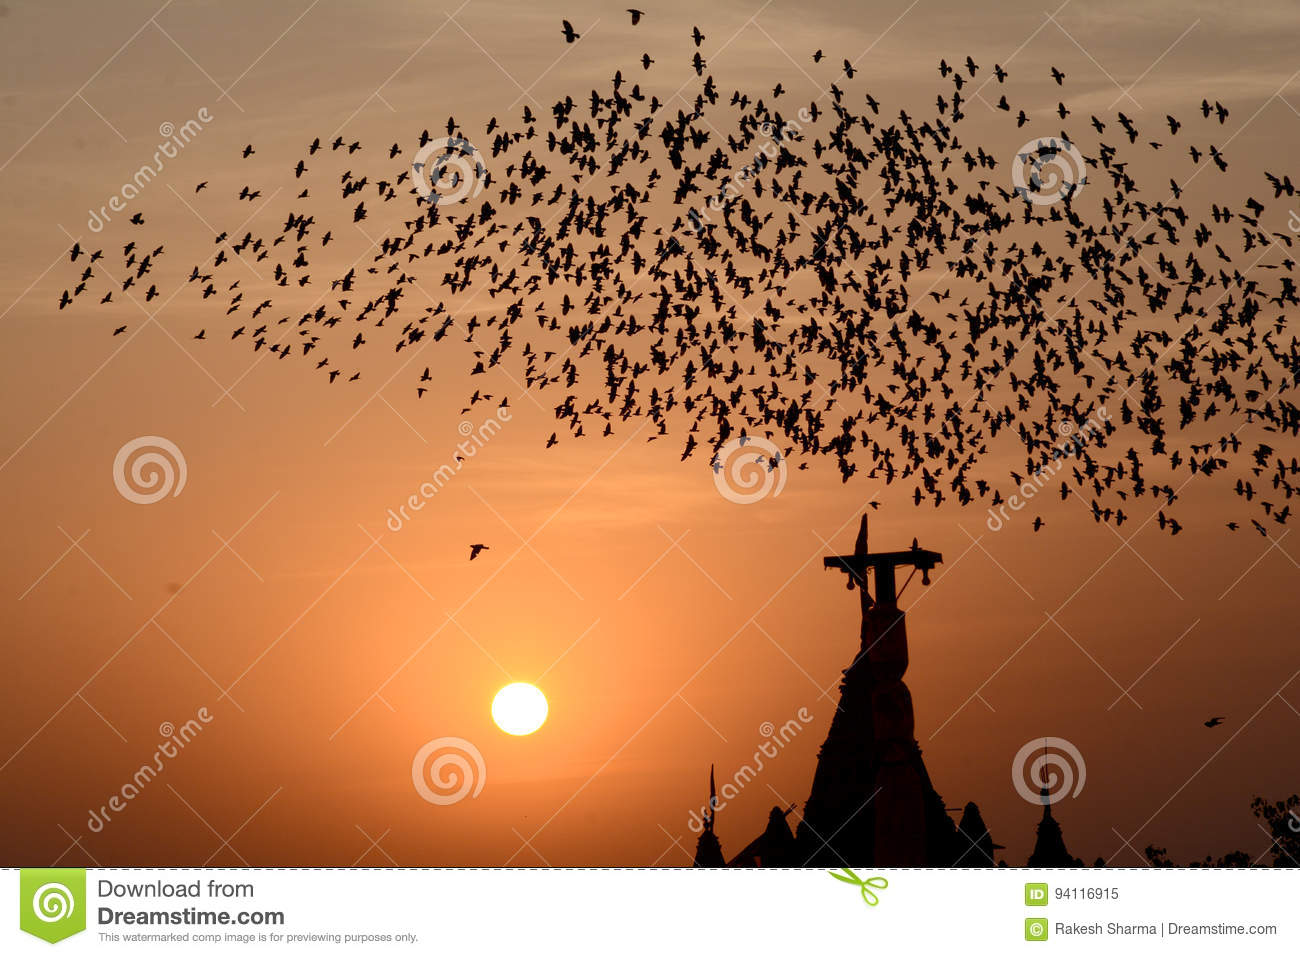 Flocking behavior of Starlings Birds in Bikaner